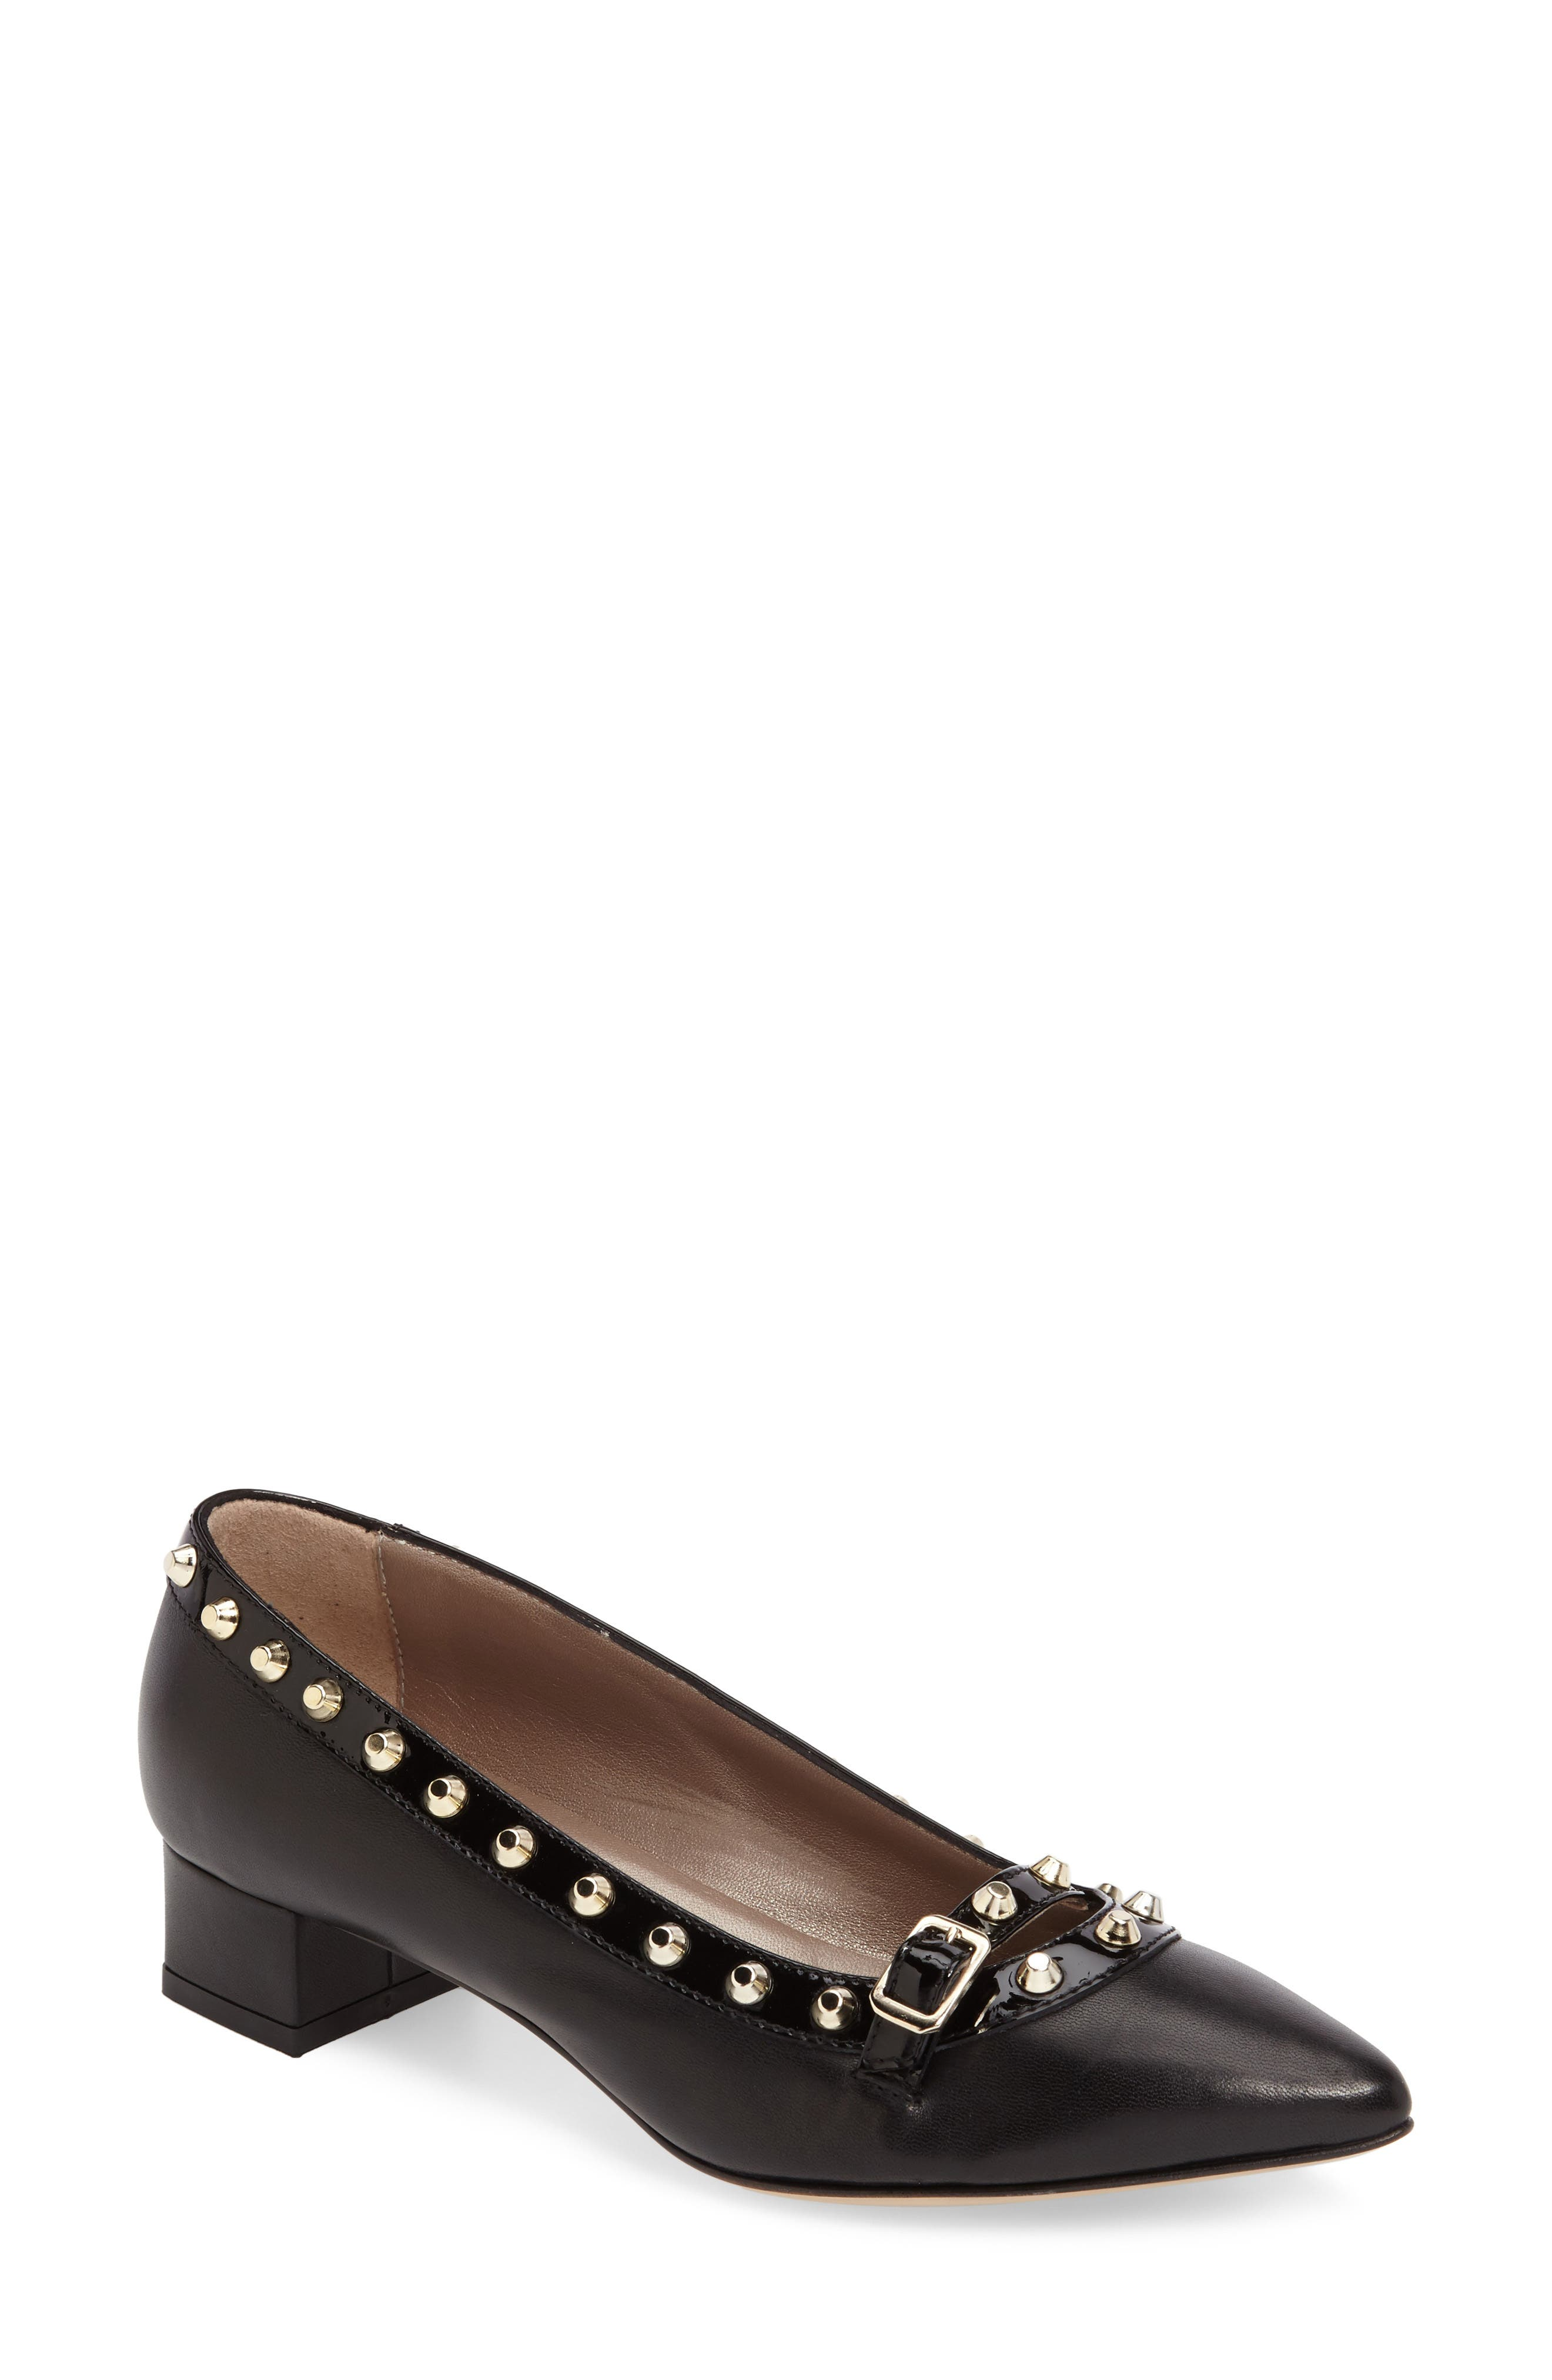 Studded Mary Jane Pump,                         Main,                         color,